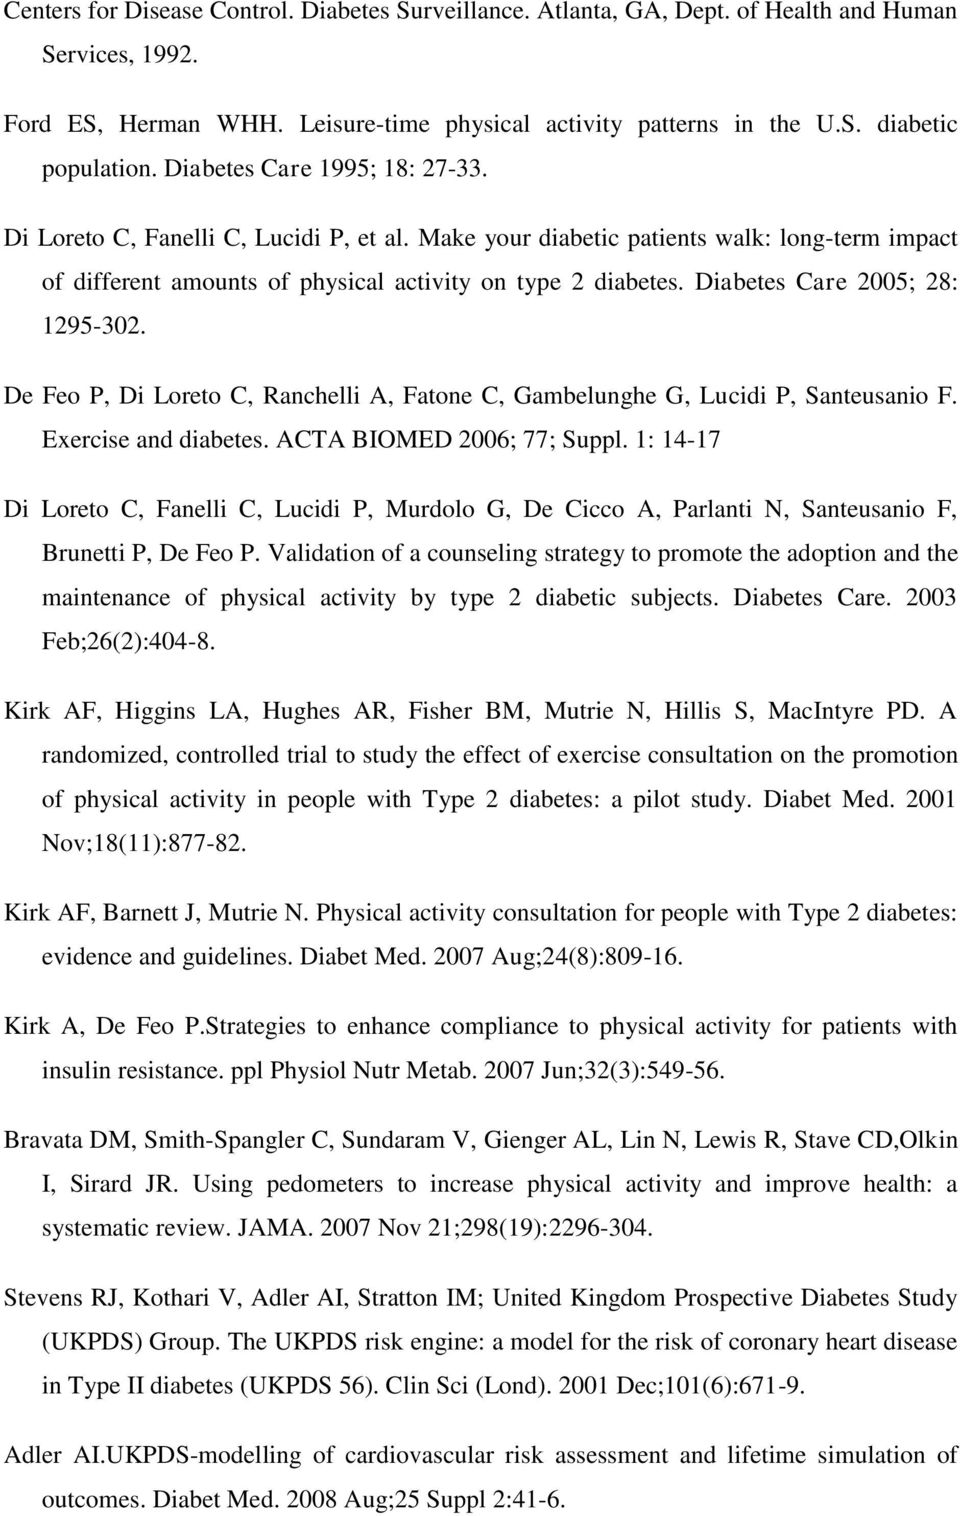 Diabetes Care 2005; 28: 1295-302. De Feo P, Di Loreto C, Ranchelli A, Fatone C, Gambelunghe G, Lucidi P, Santeusanio F. Exercise and diabetes. ACTA BIOMED 2006; 77; Suppl.